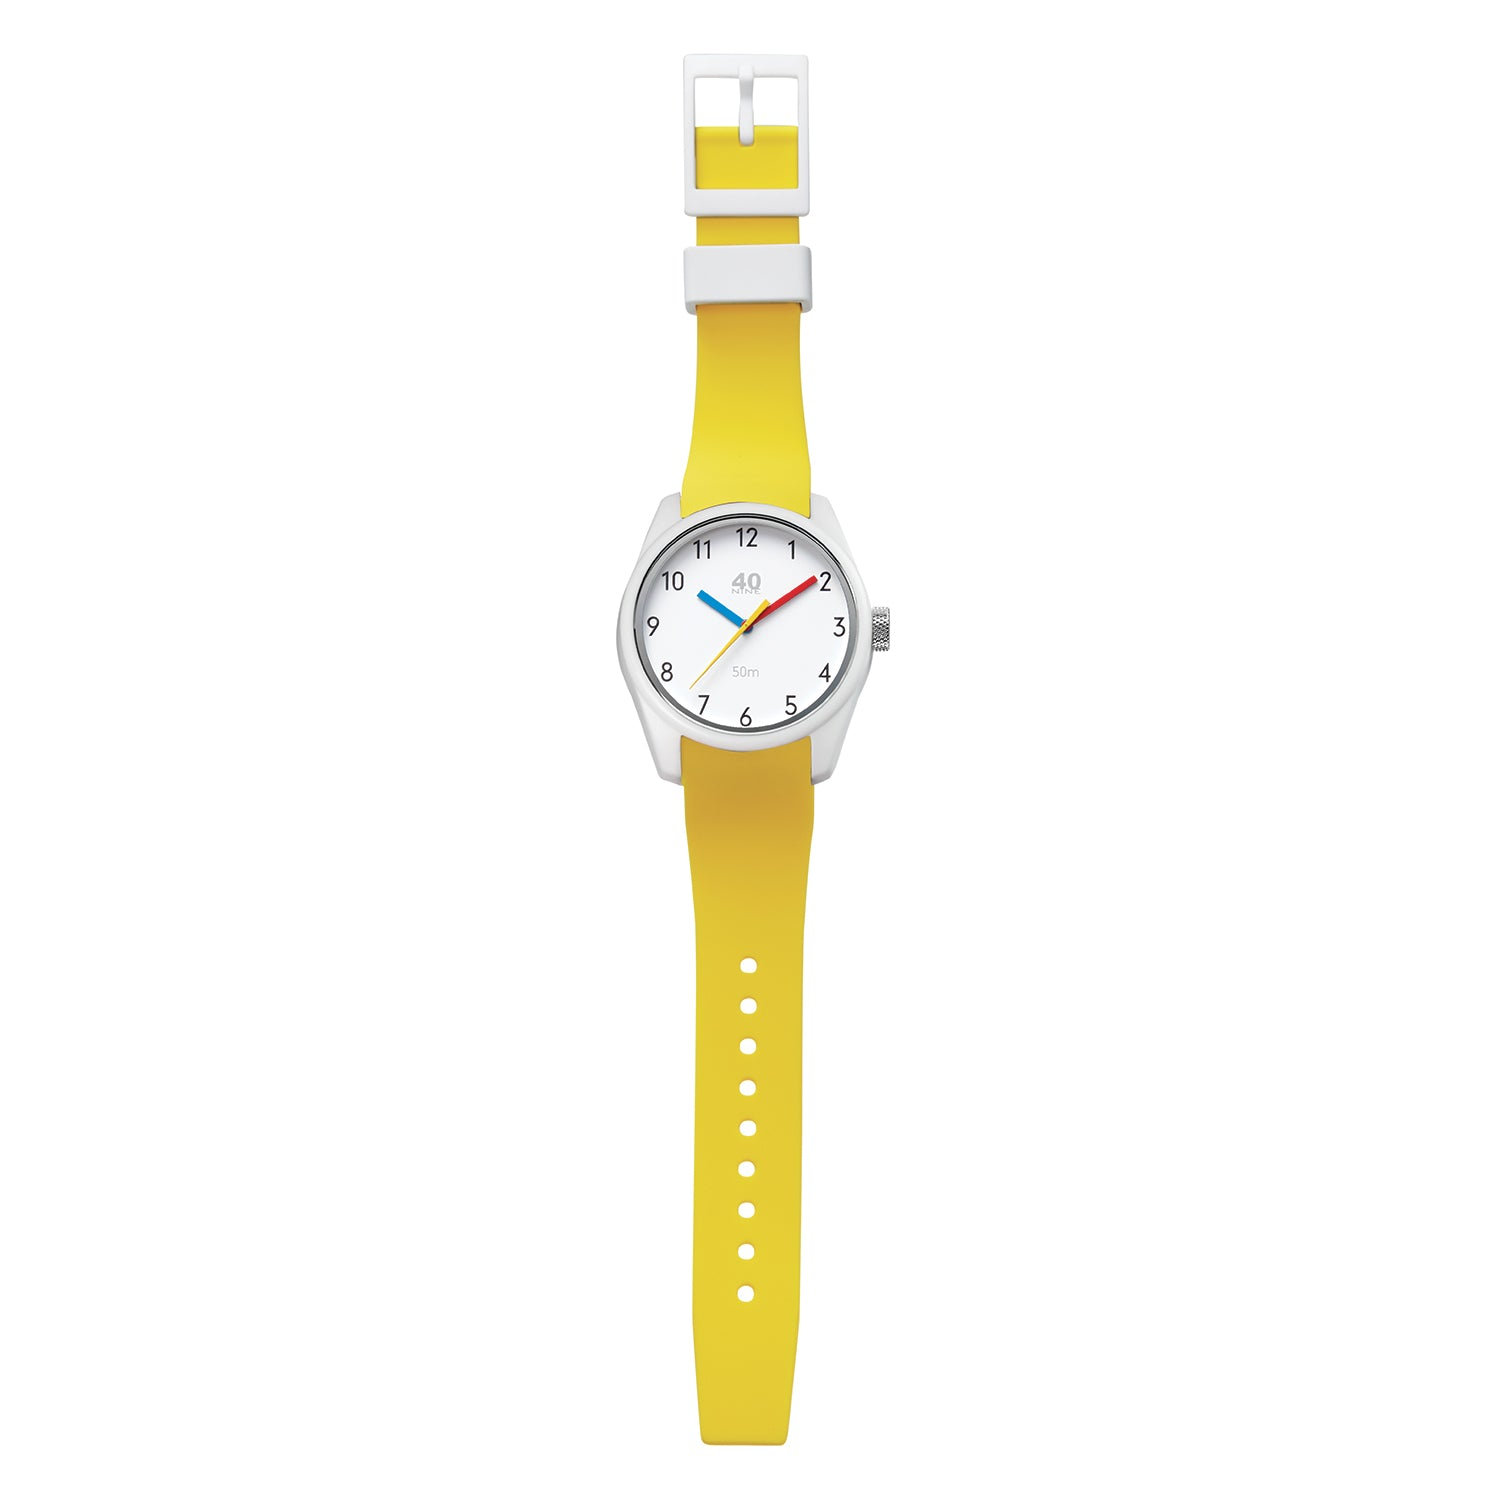 40N3.9Y 40NINE PRIMARY 43MM WATCH